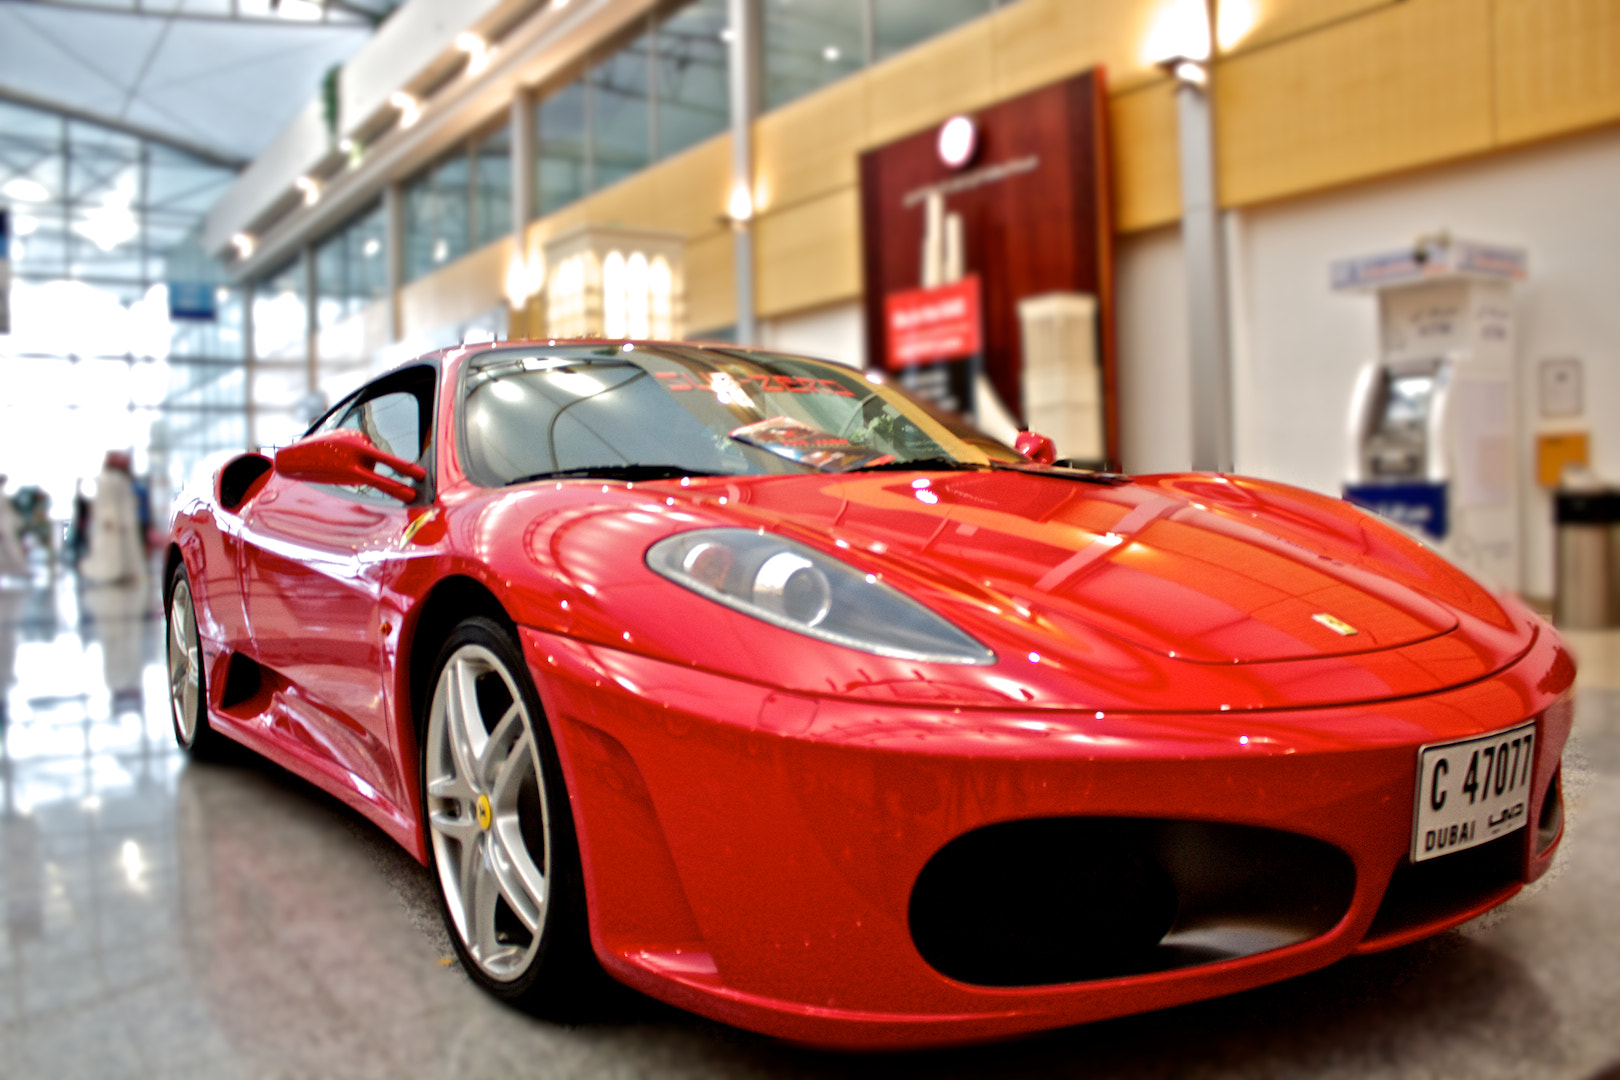 Photograph Ferrari by Hamza Feroz on 500px